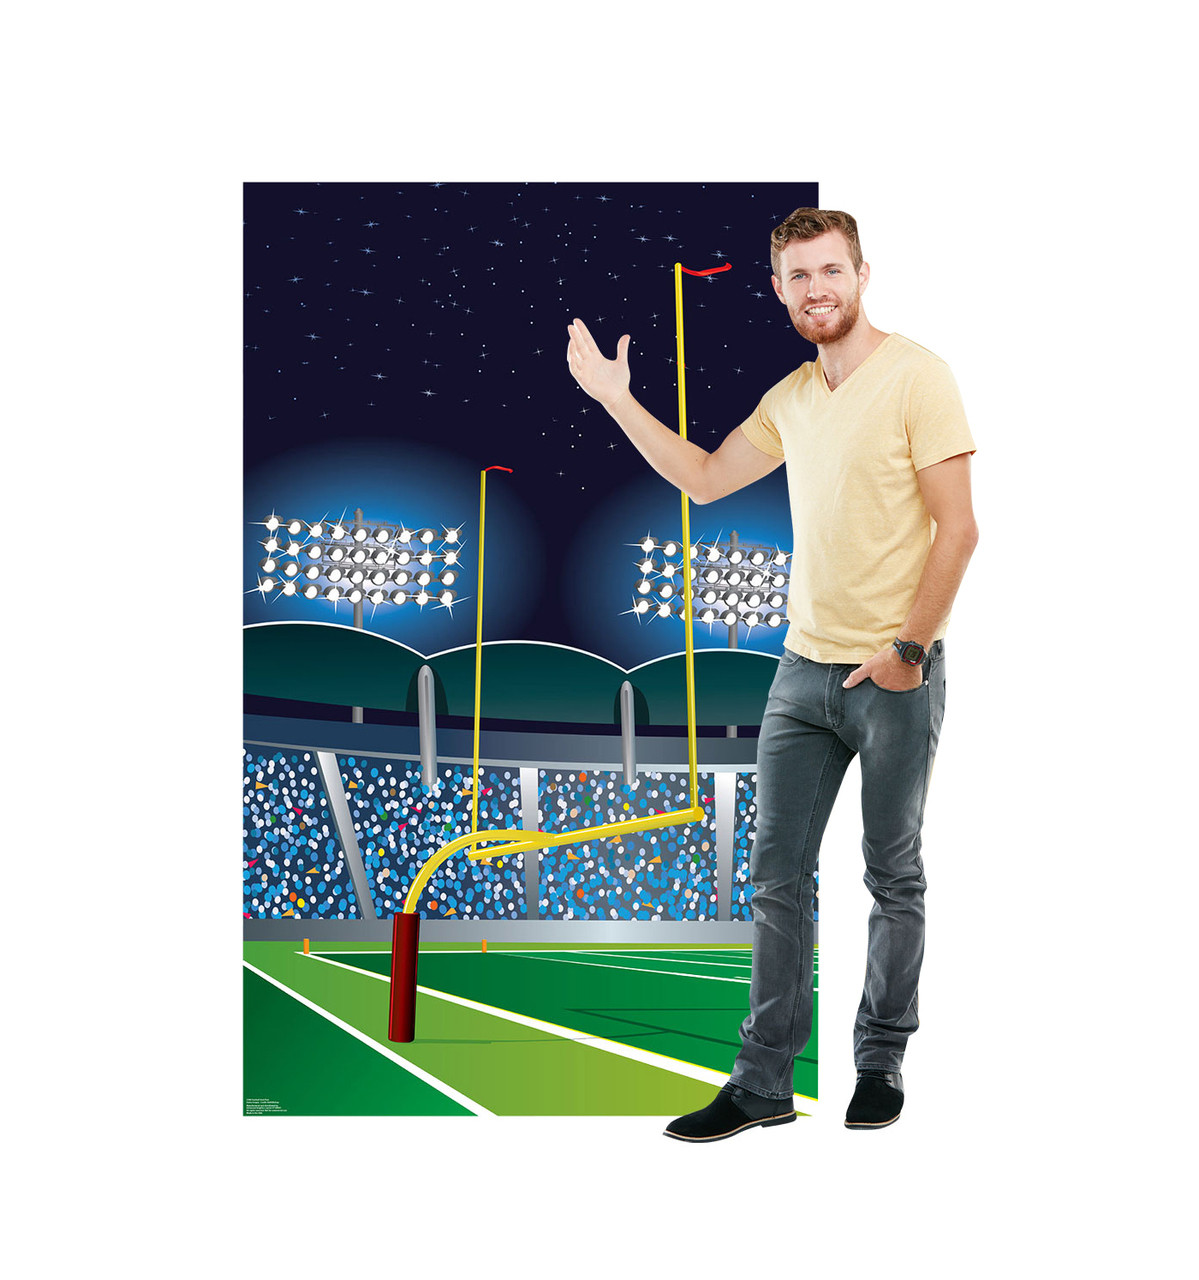 Life-size Football Goal Post Cardboard Standup 2